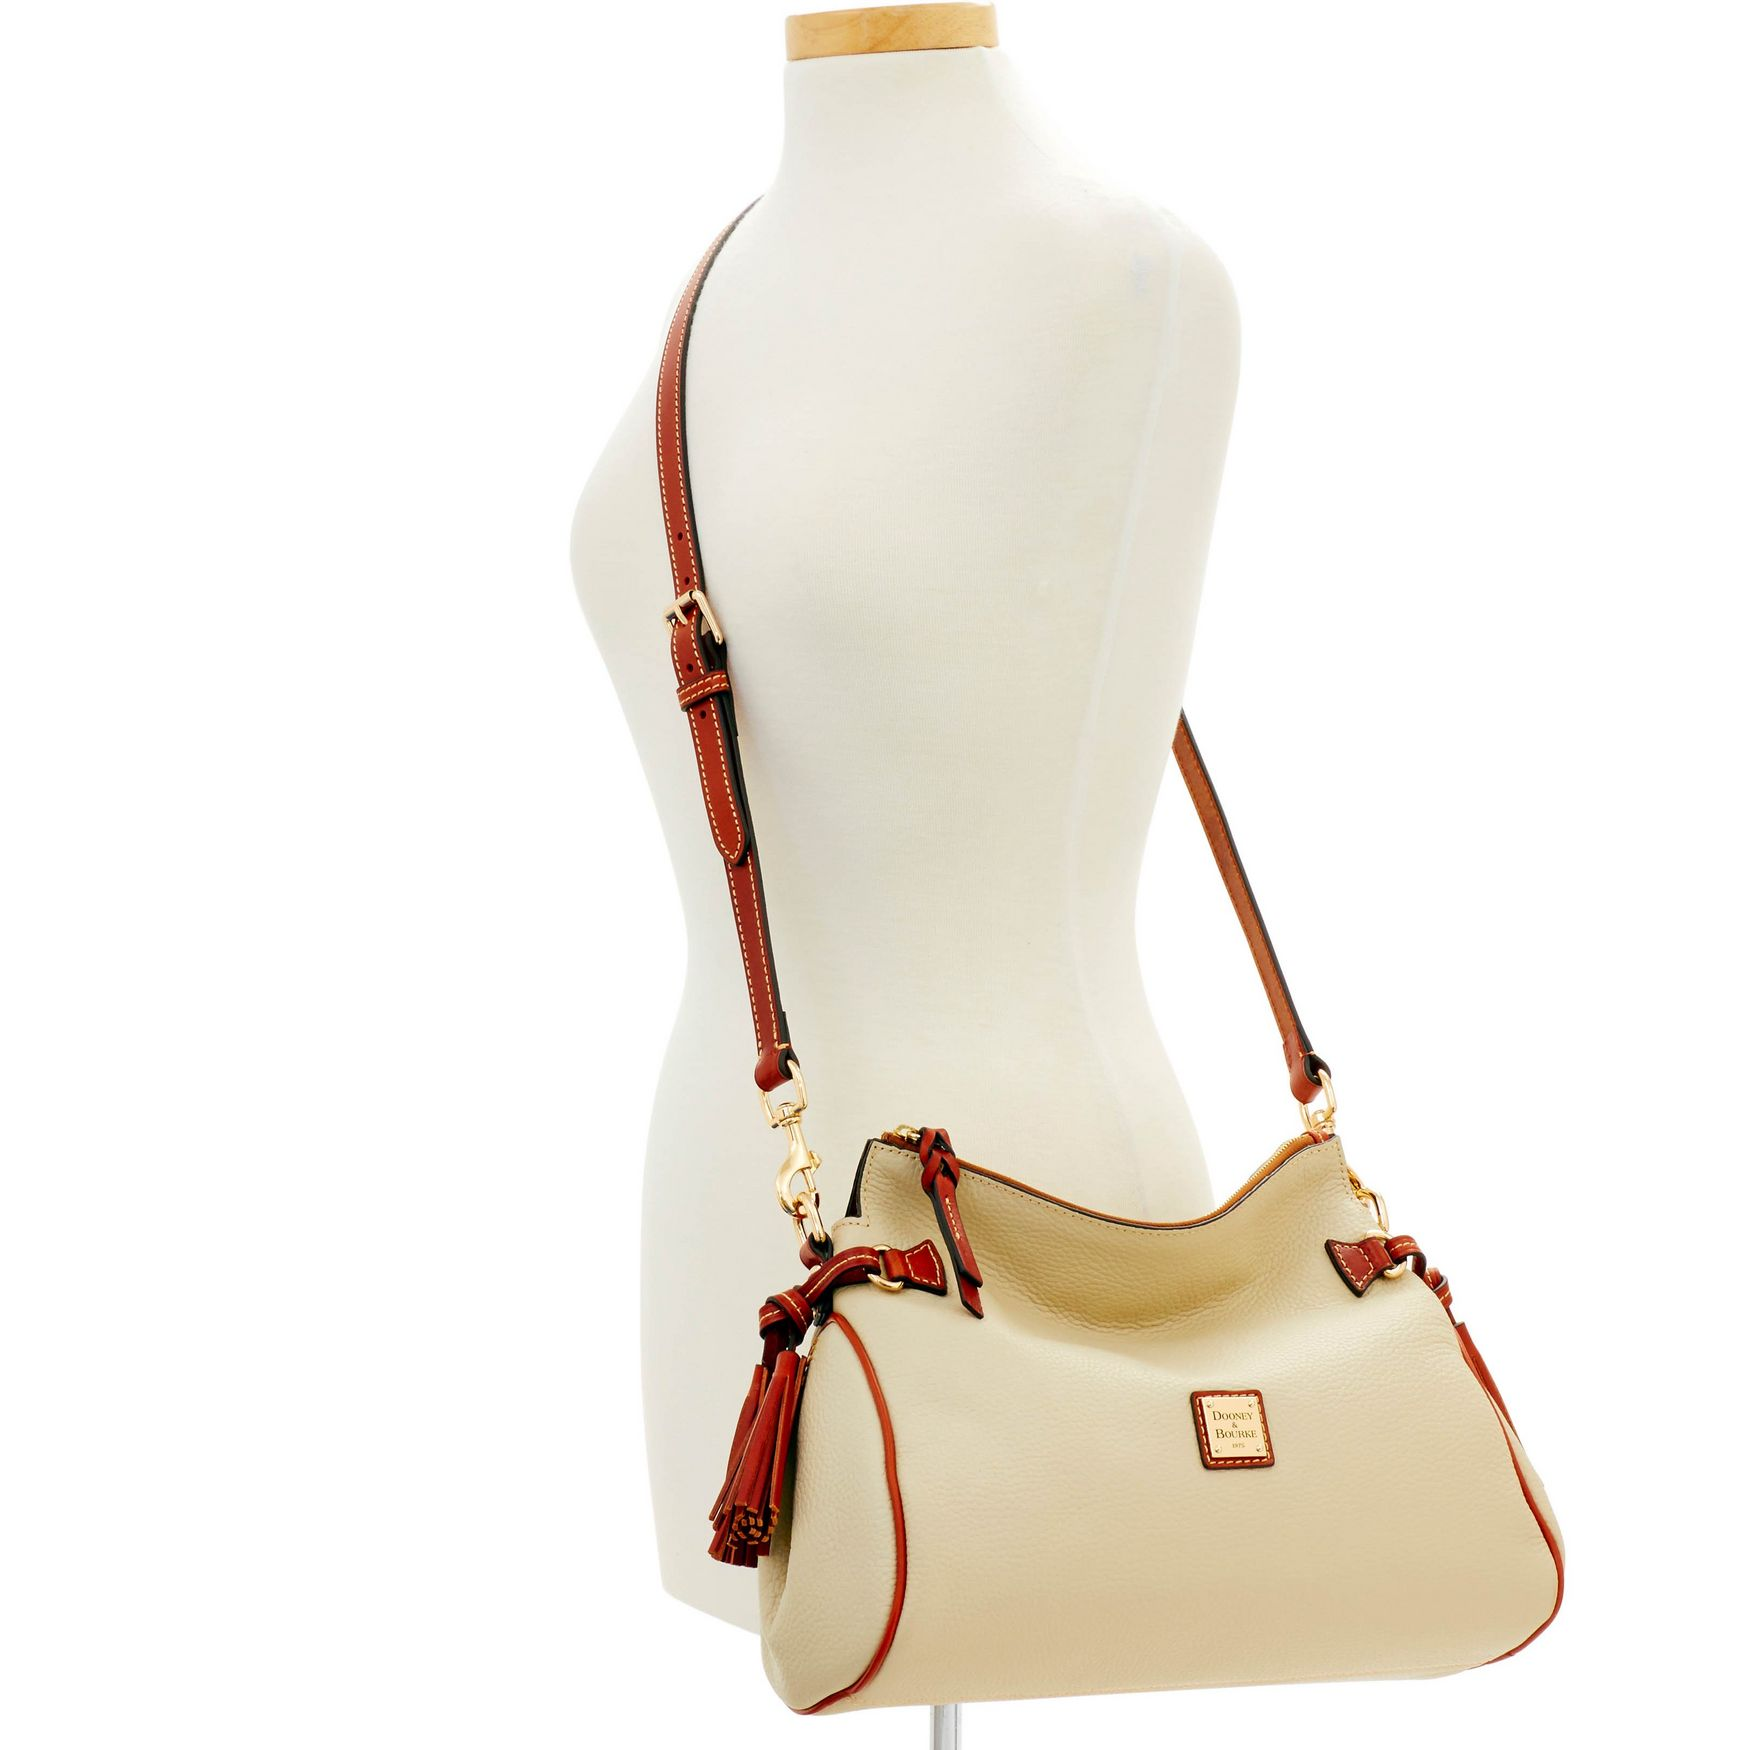 Dooney-amp-Bourke-Pebble-Grain-Medium-Zip-Crossbody-Shoulder-Bag thumbnail 14